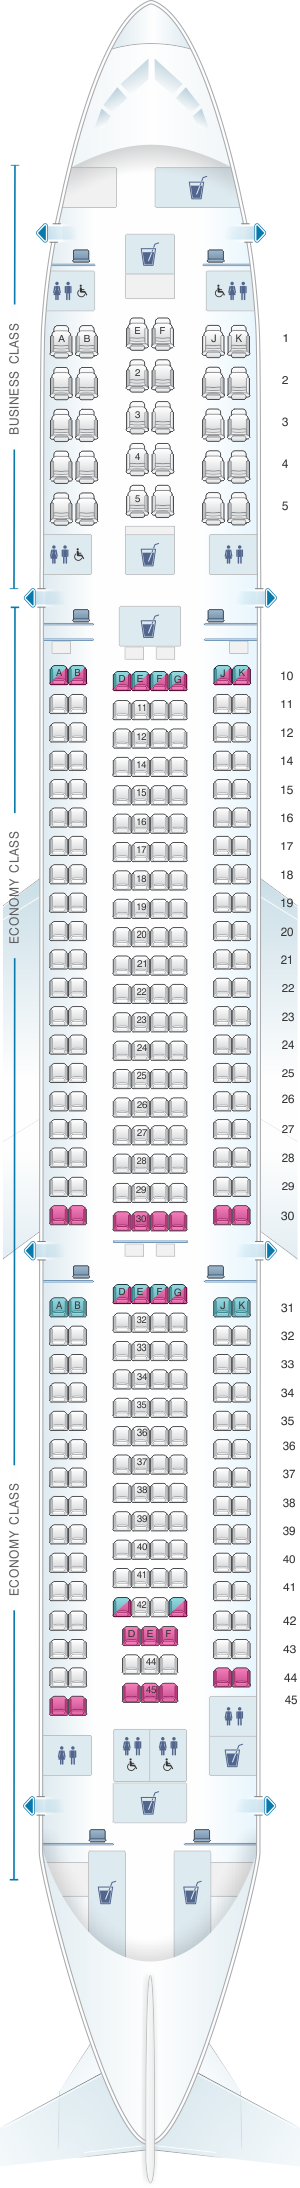 Seat map for Qatar Airways Airbus A330 300 305pax